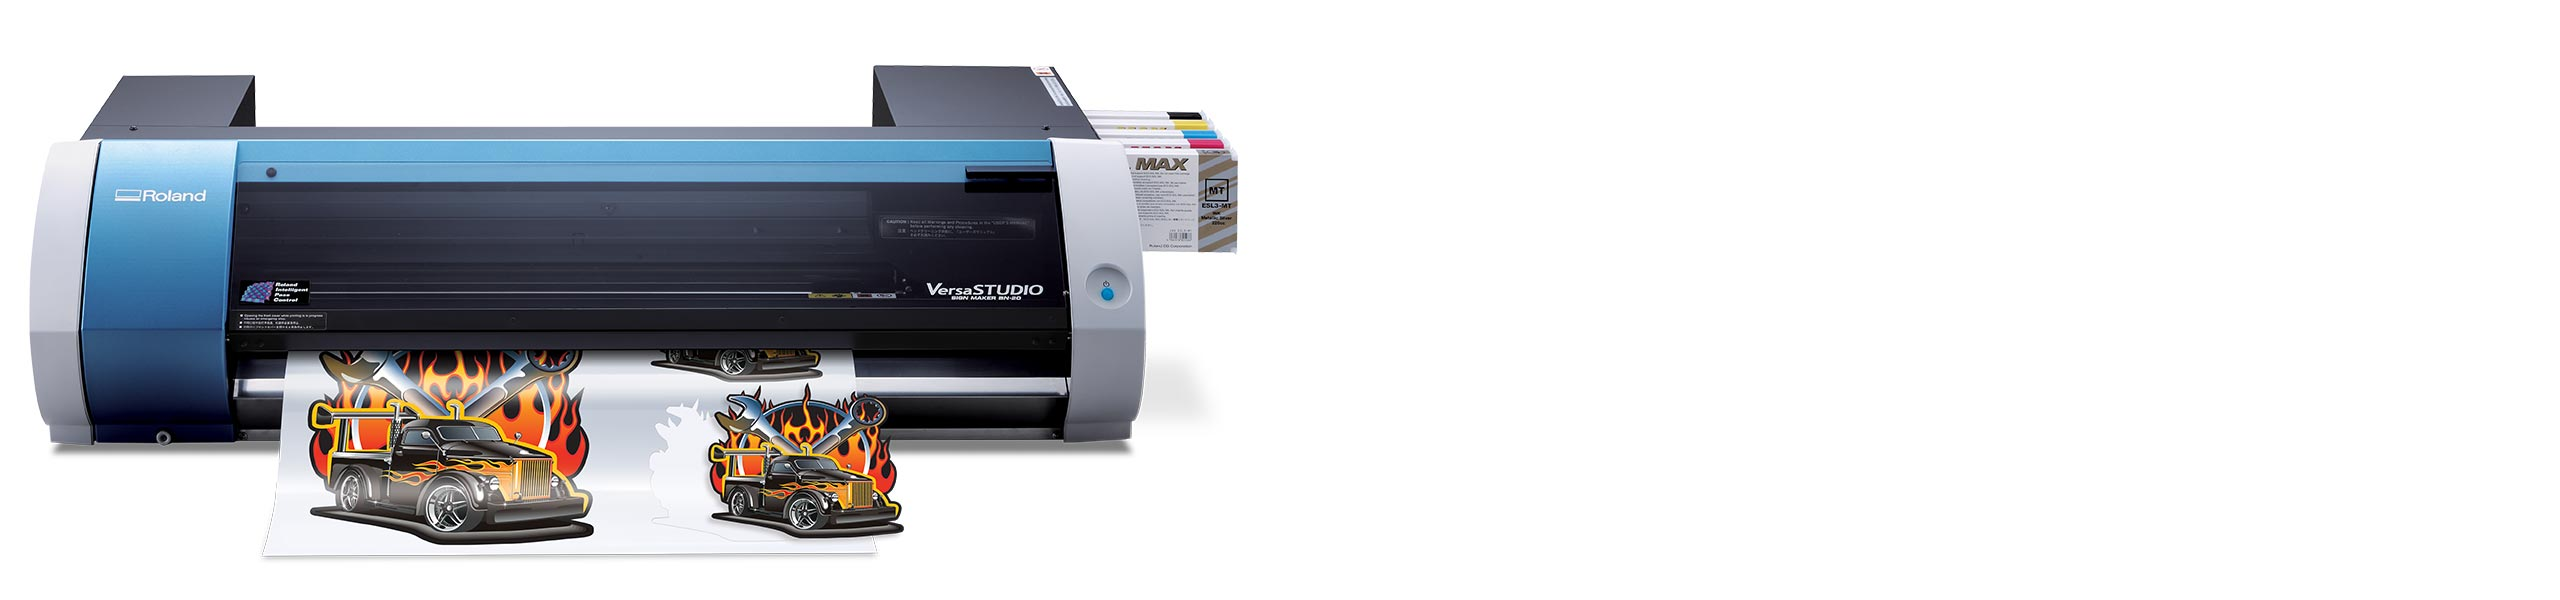 Desktop Inkjet Printer Cutter Versastudio Bn 20 Roland Dga